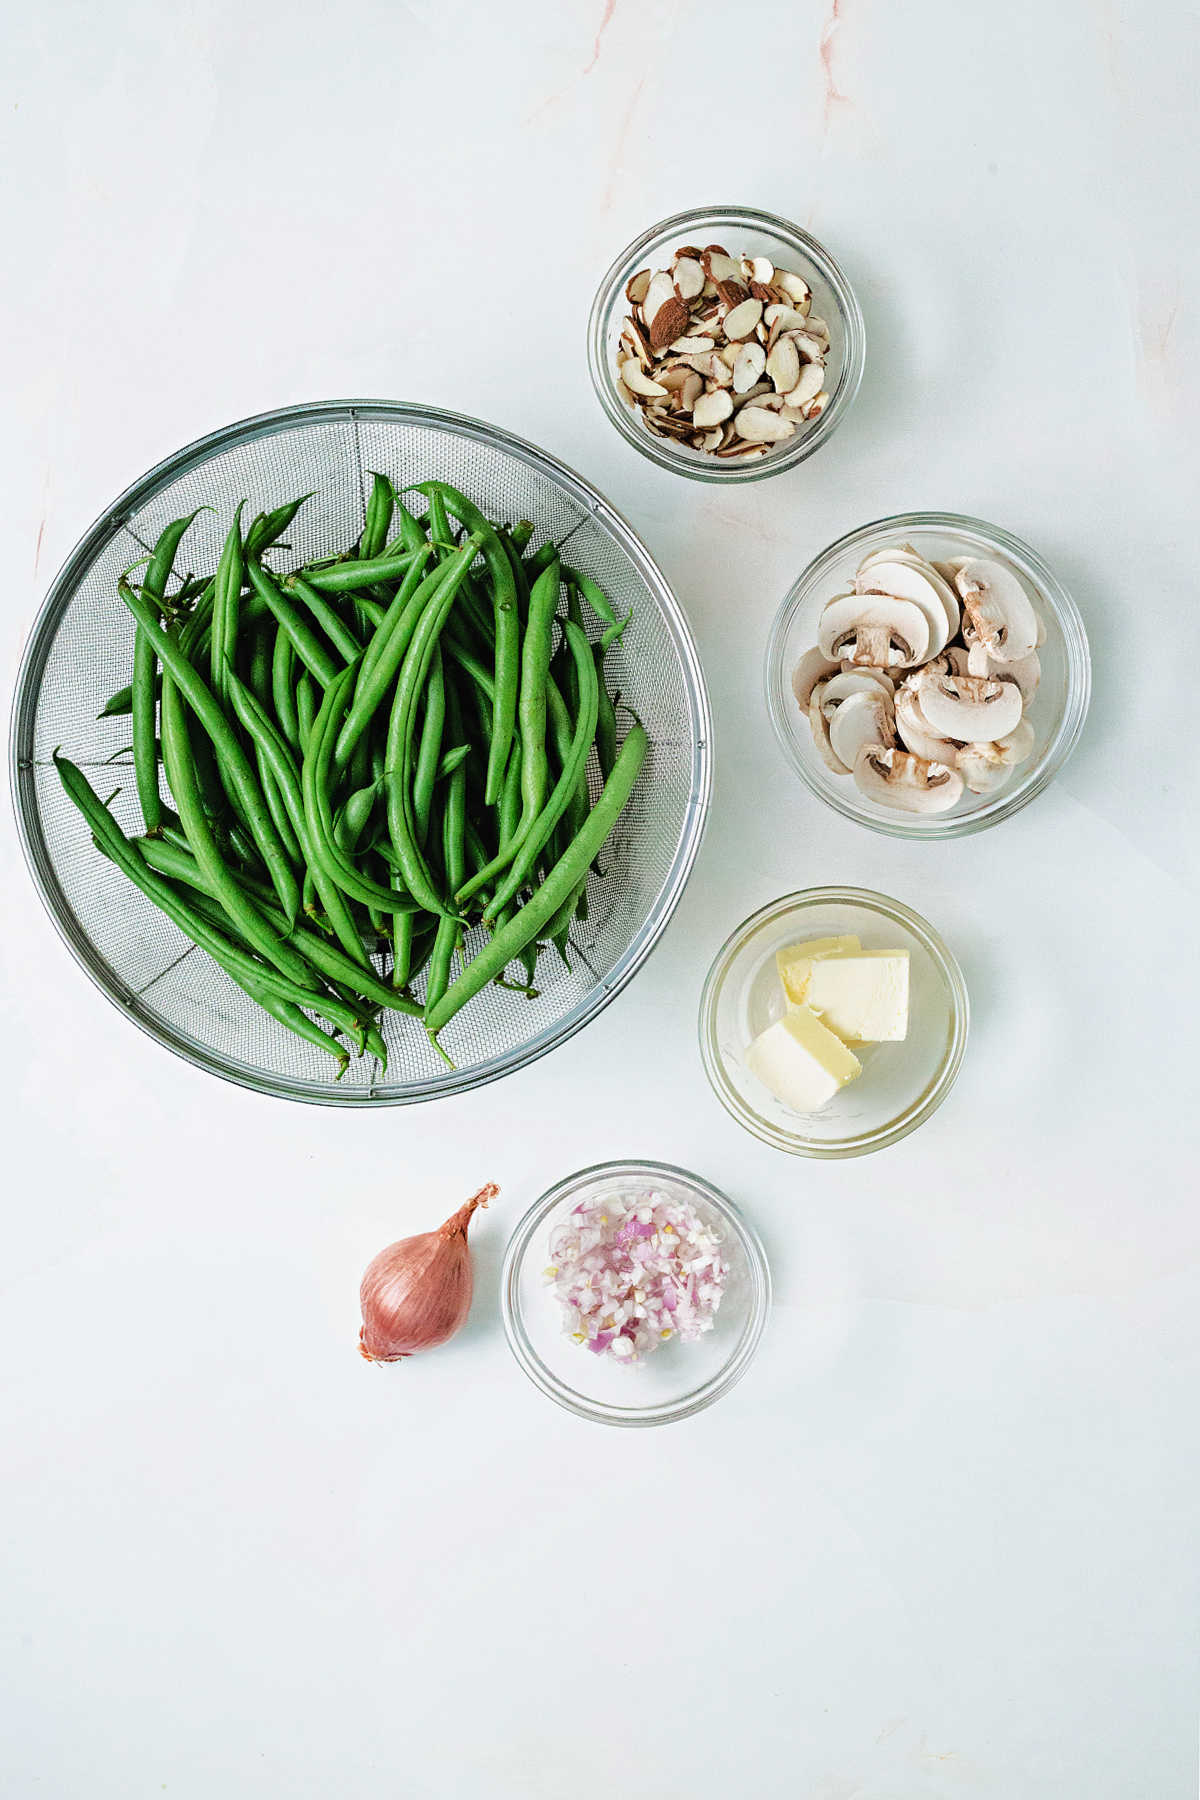 ingredients for green beans almondine on a counter: fresh green beans, butter, shallots, sliced almonds, mushrooms.